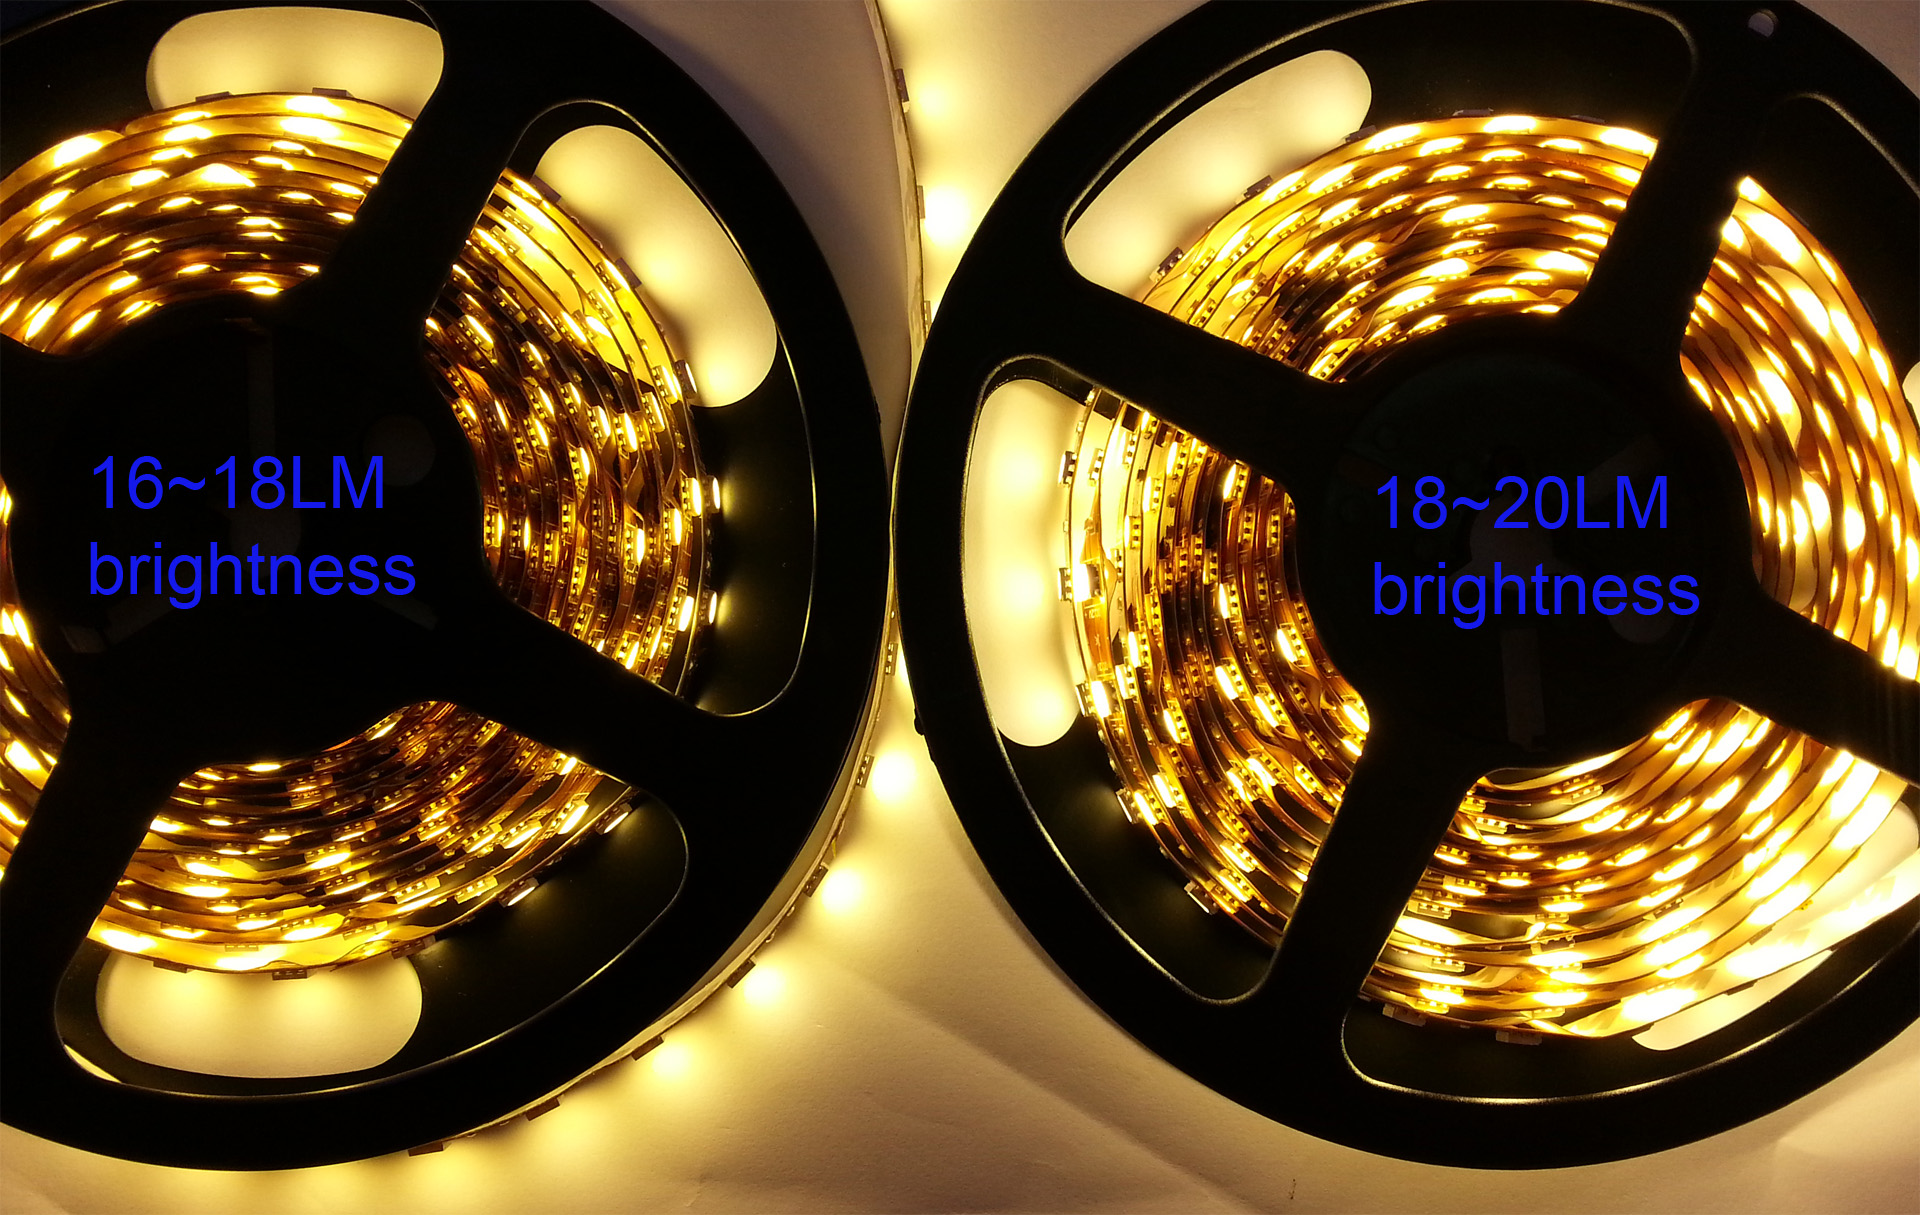 Ultra_Bright_Warm_White_5050_LED_Tape_Strip_Ribbon_Light_brightest_lighting